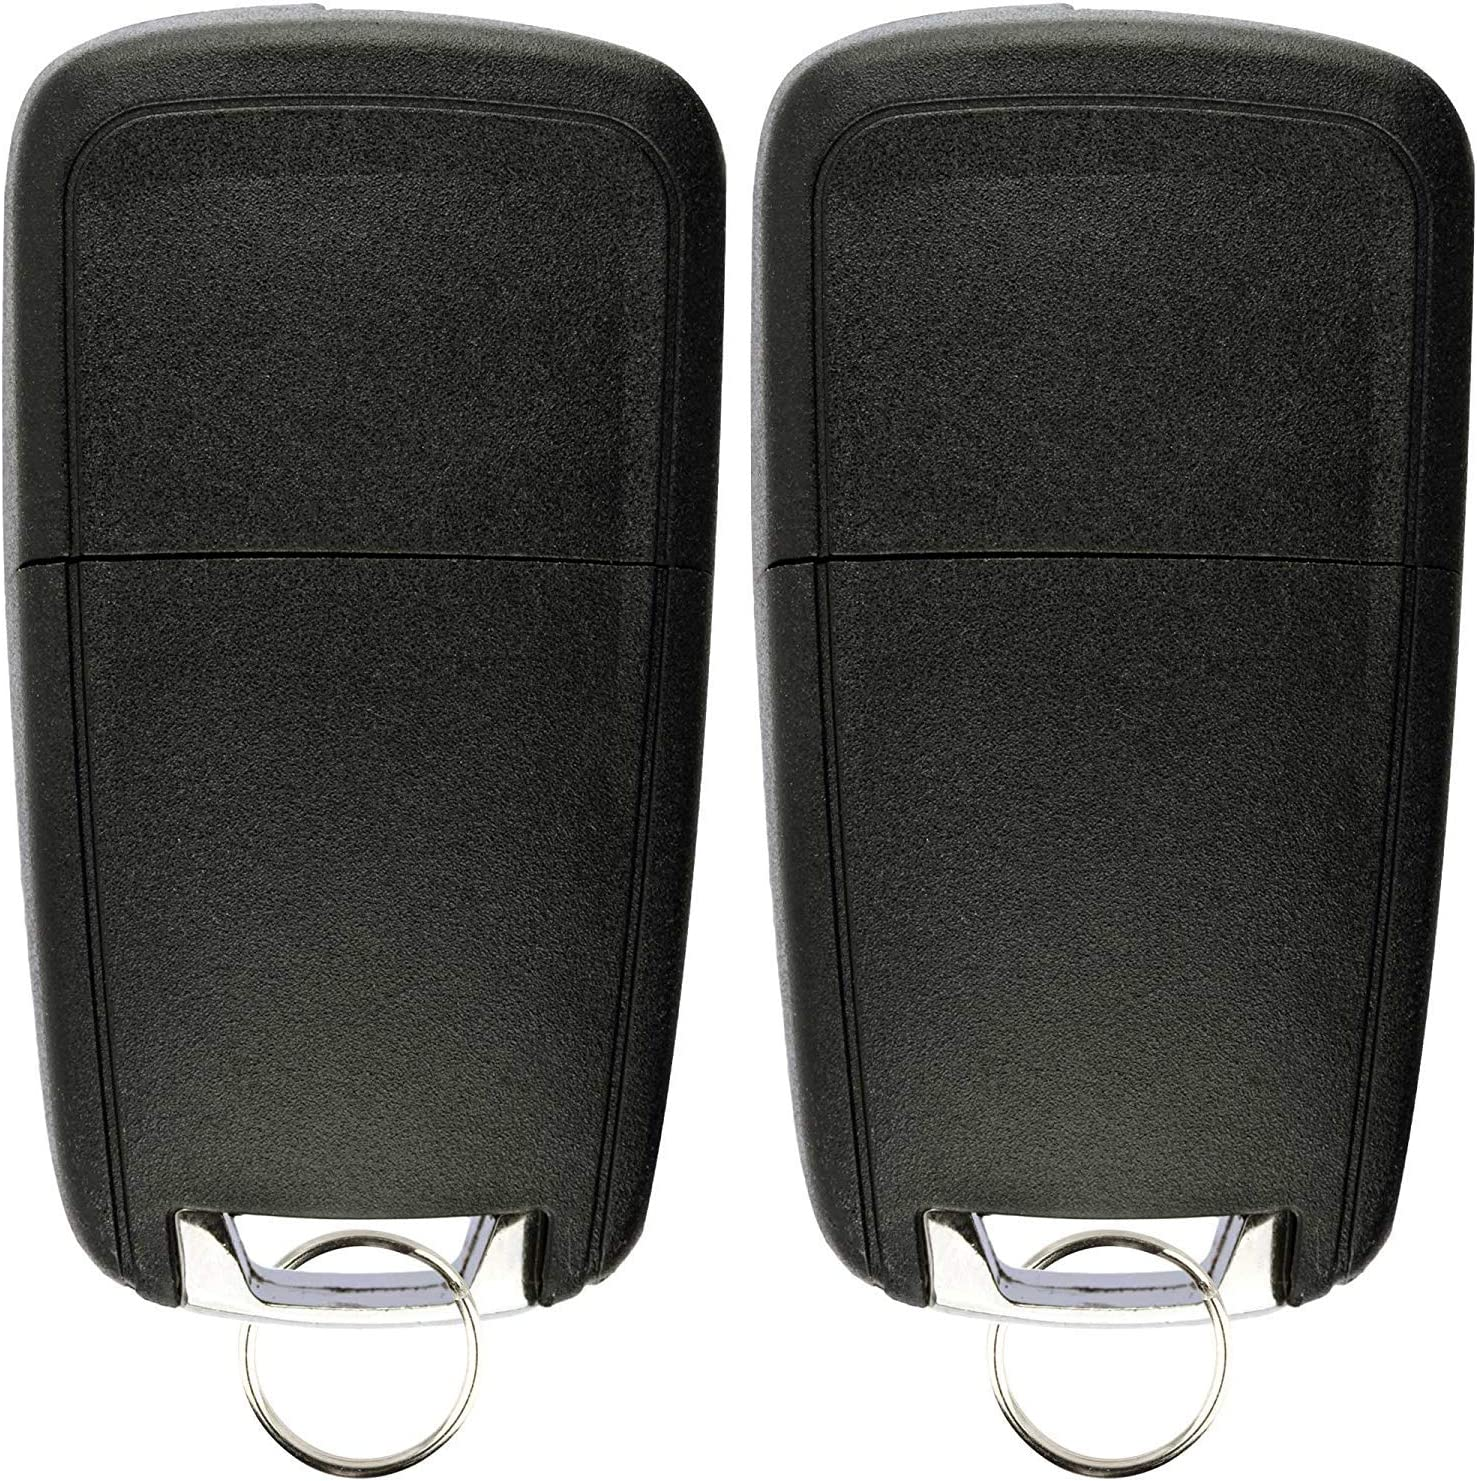 KeylessOption Keyless Car Remote Uncut Flip Ignition Key Fob Replacement for OHT01060512 Pack of 2